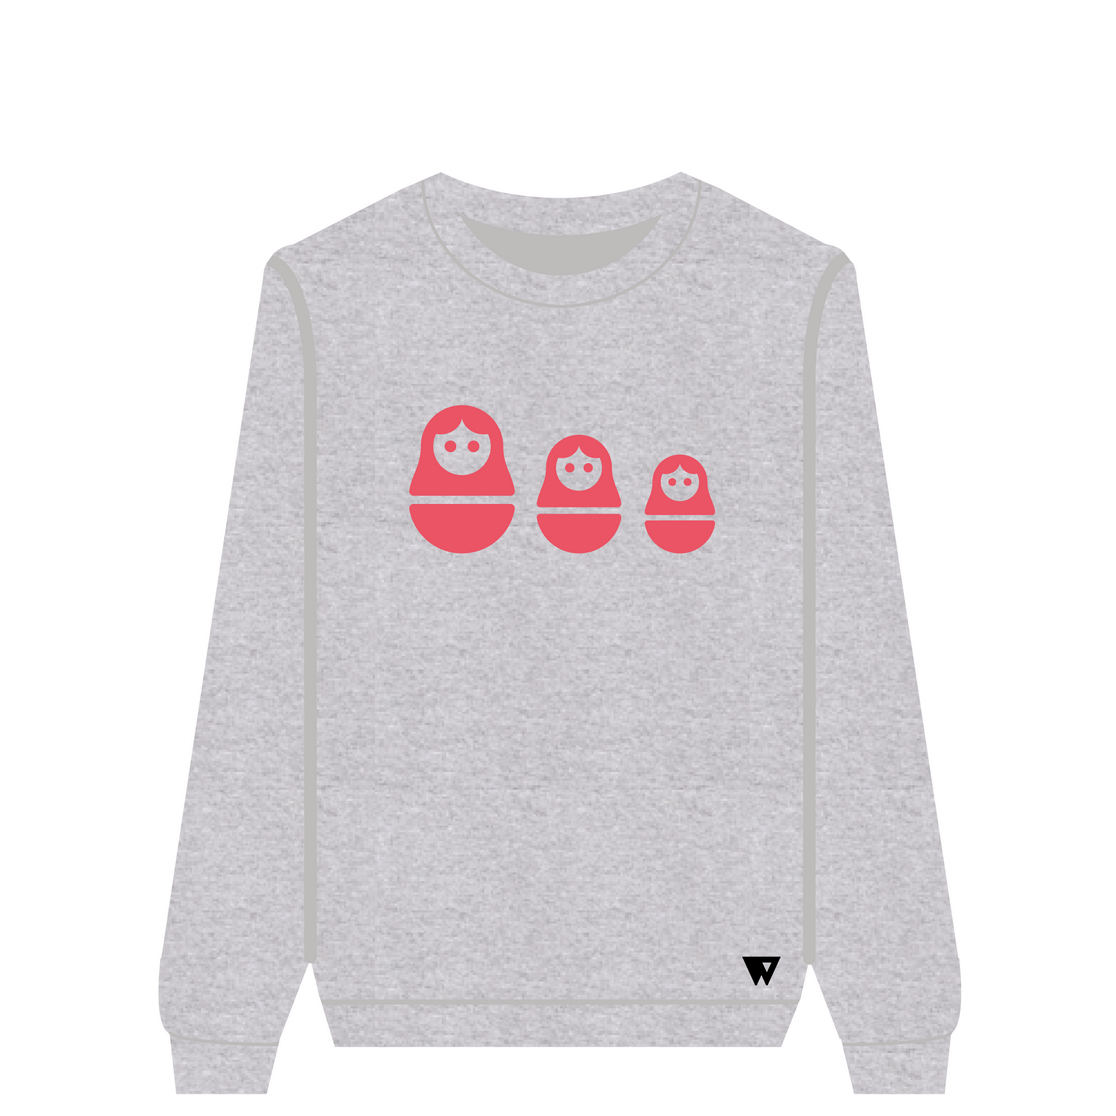 Sweatshirt Russian Dolls |Wuzzee